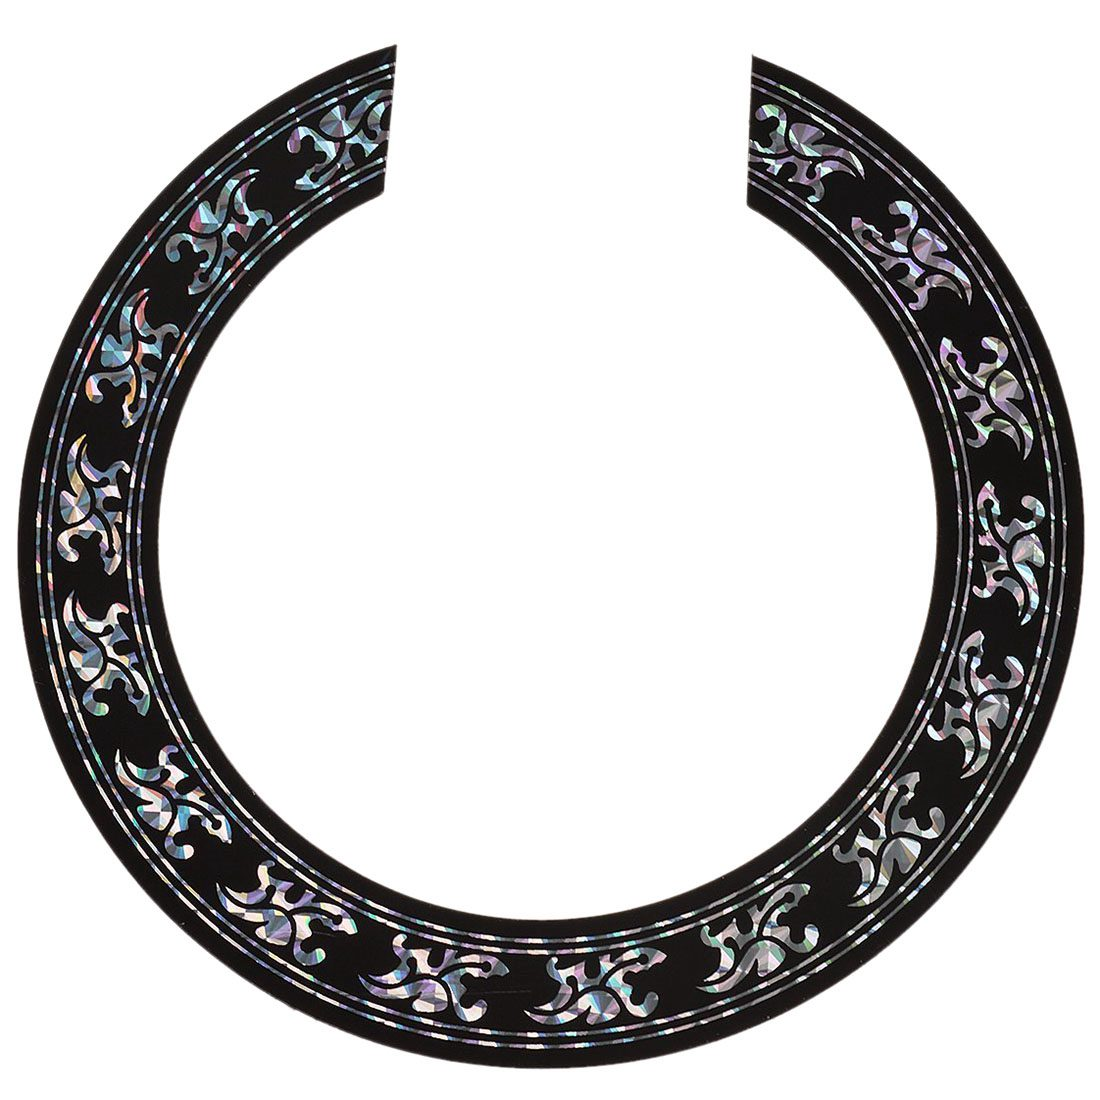 Sound Hole Rose Decal Sticker For Acoustic Classical Guitar Parts Black+Silver